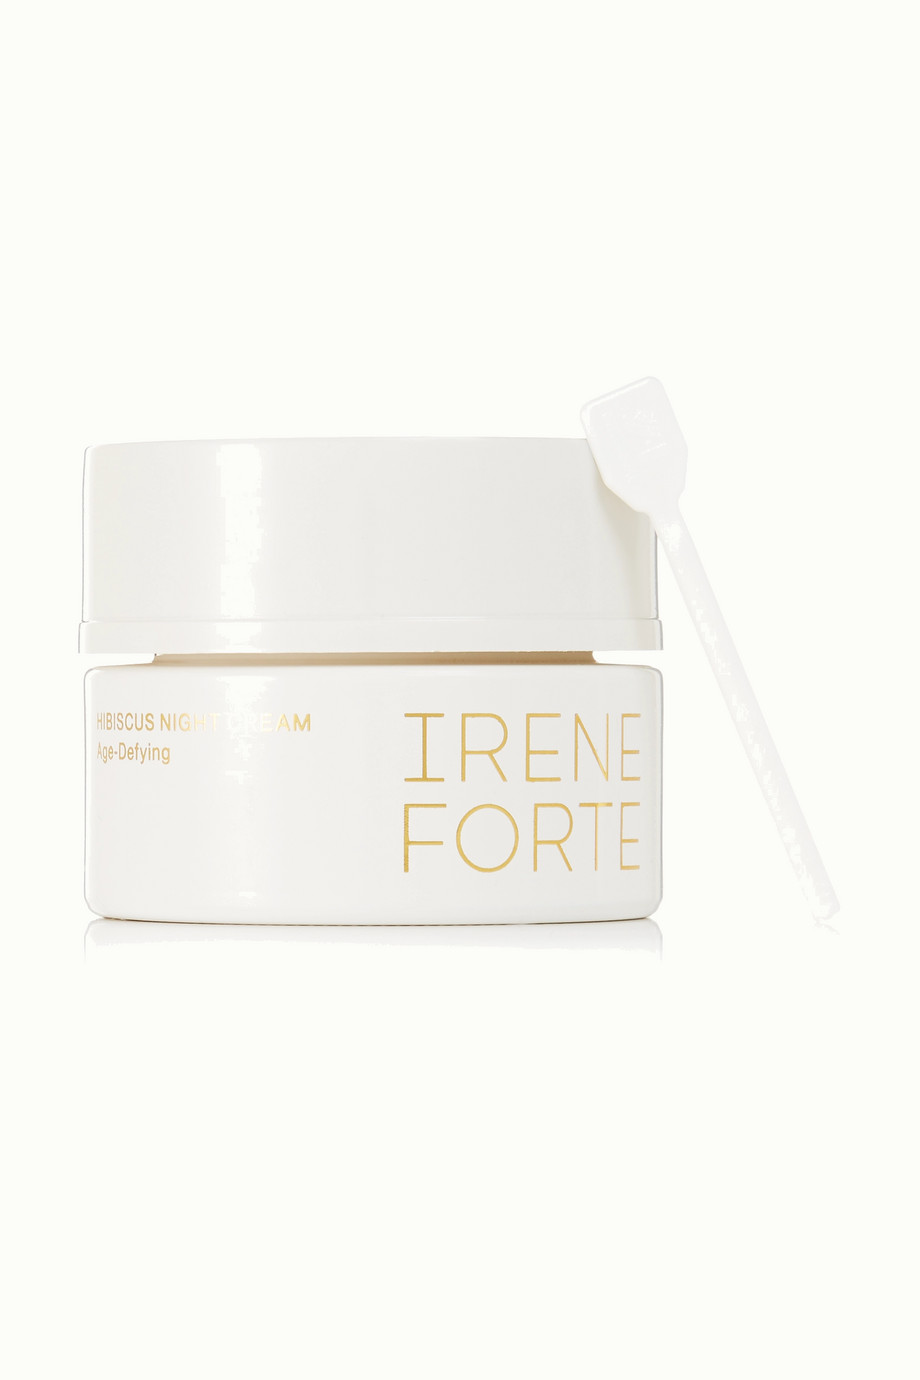 Irene Forte + NET SUSTAIN Age-Defying Hibiscus Night Cream, 50ml